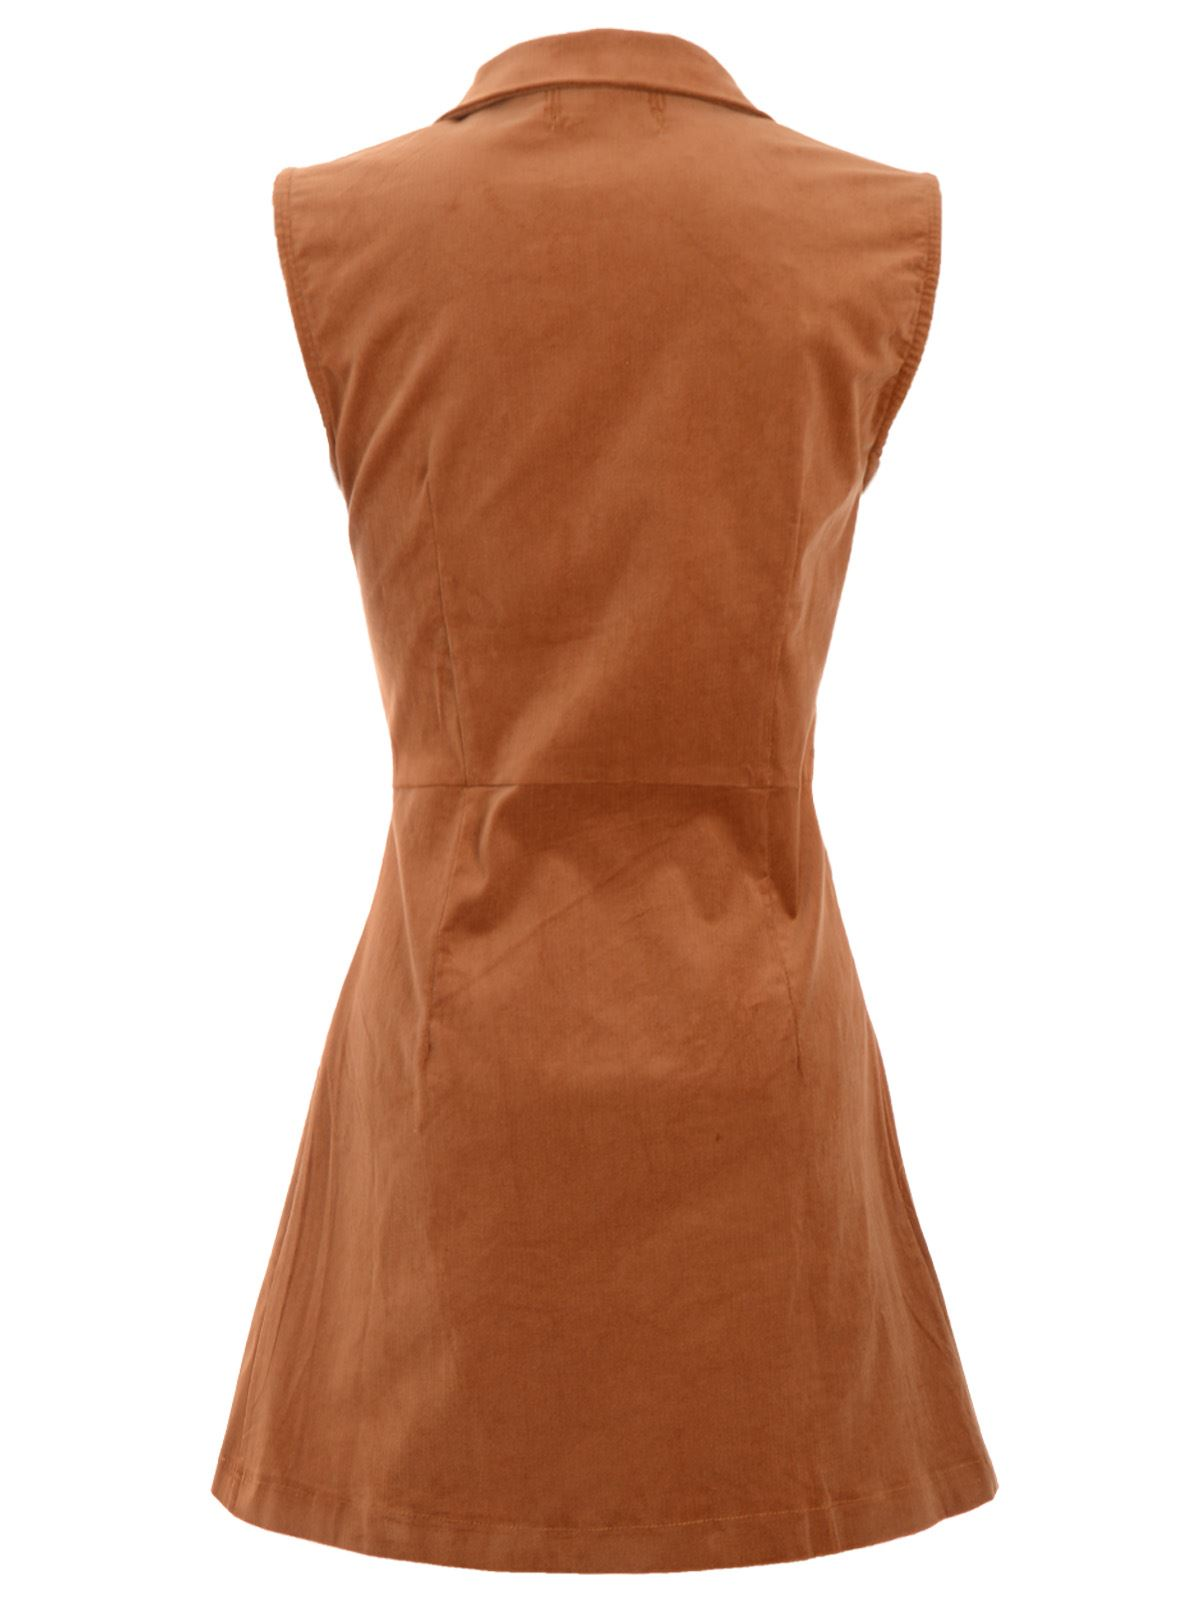 LADIES WOMENS SLEEVELESS FRONT BUTTONED TWO CHEST POCKET FAUX SUEDE A-LINE DRESS